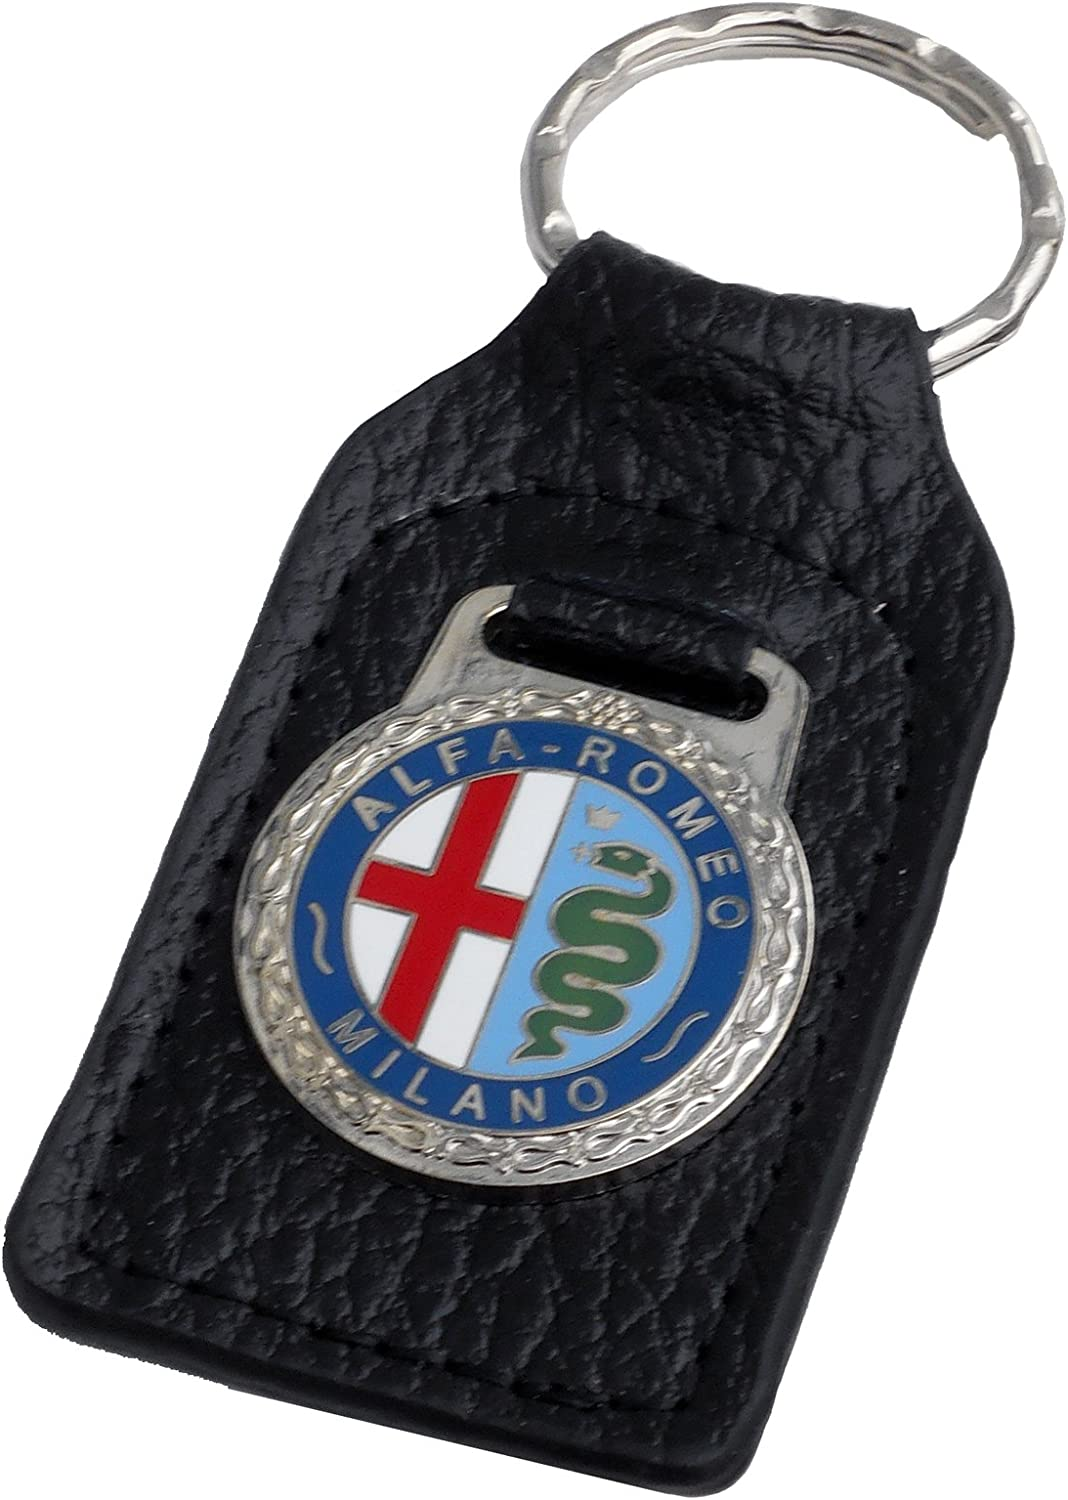 BLACK LEATHER KEYRING WITH ENAMEL ALFA ROMEO LOGO NEW